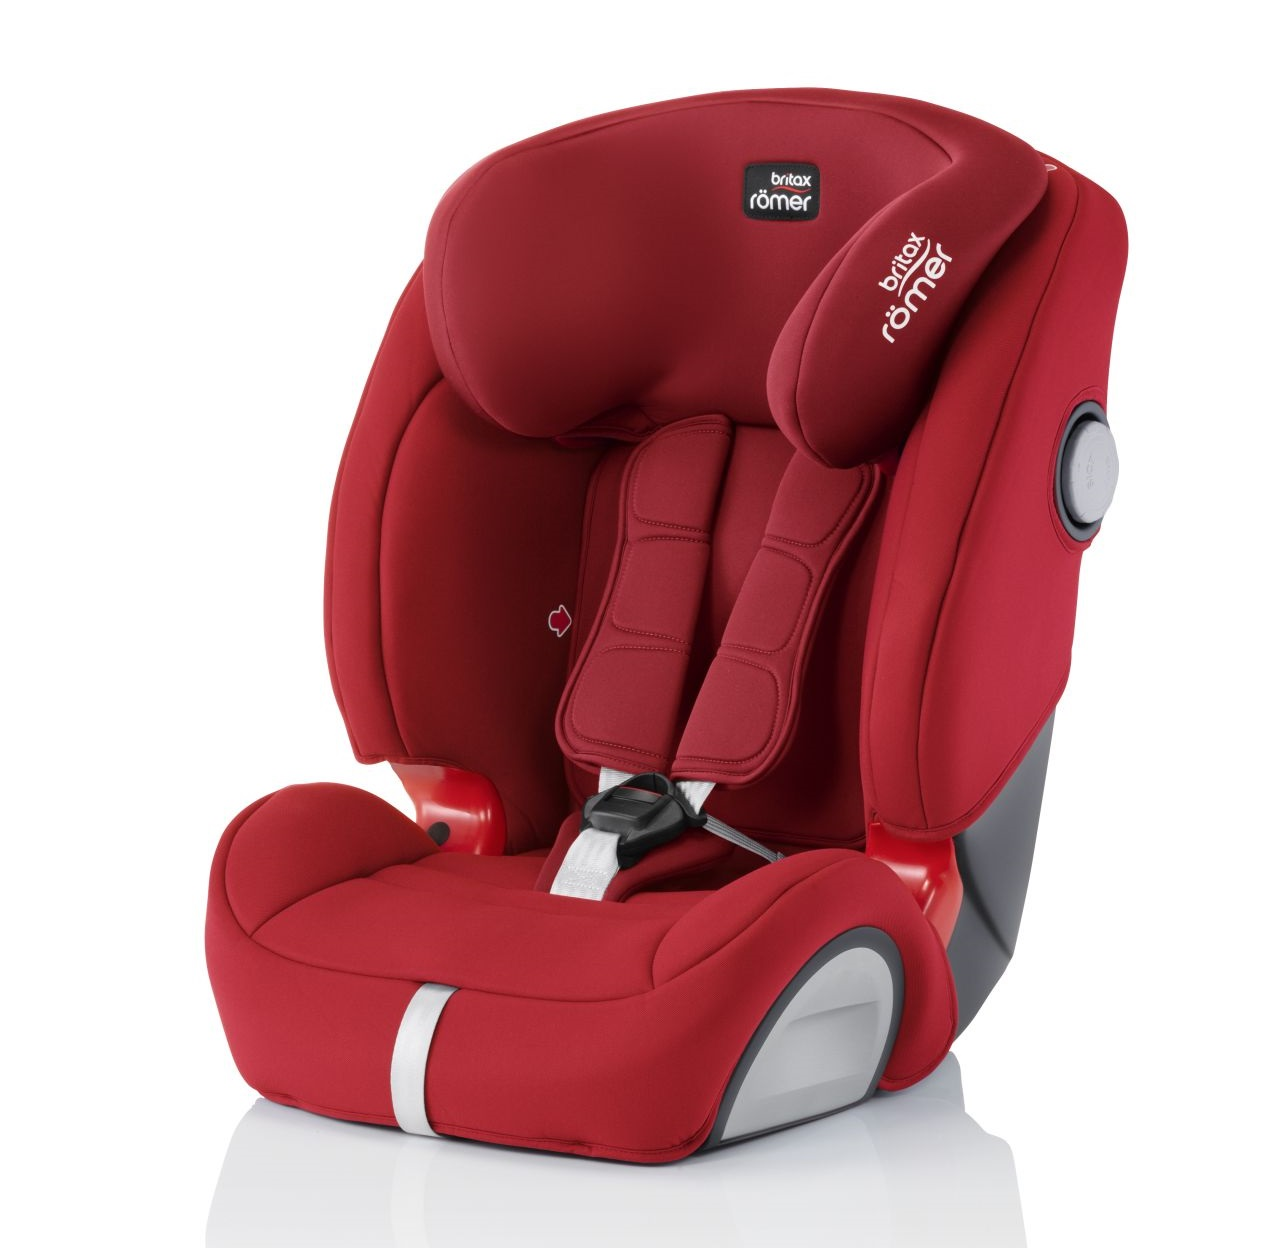 britax r mer kindersitz evolva 1 2 3 sl sict isofix 2018 flame red online kaufen bei kidsroom. Black Bedroom Furniture Sets. Home Design Ideas